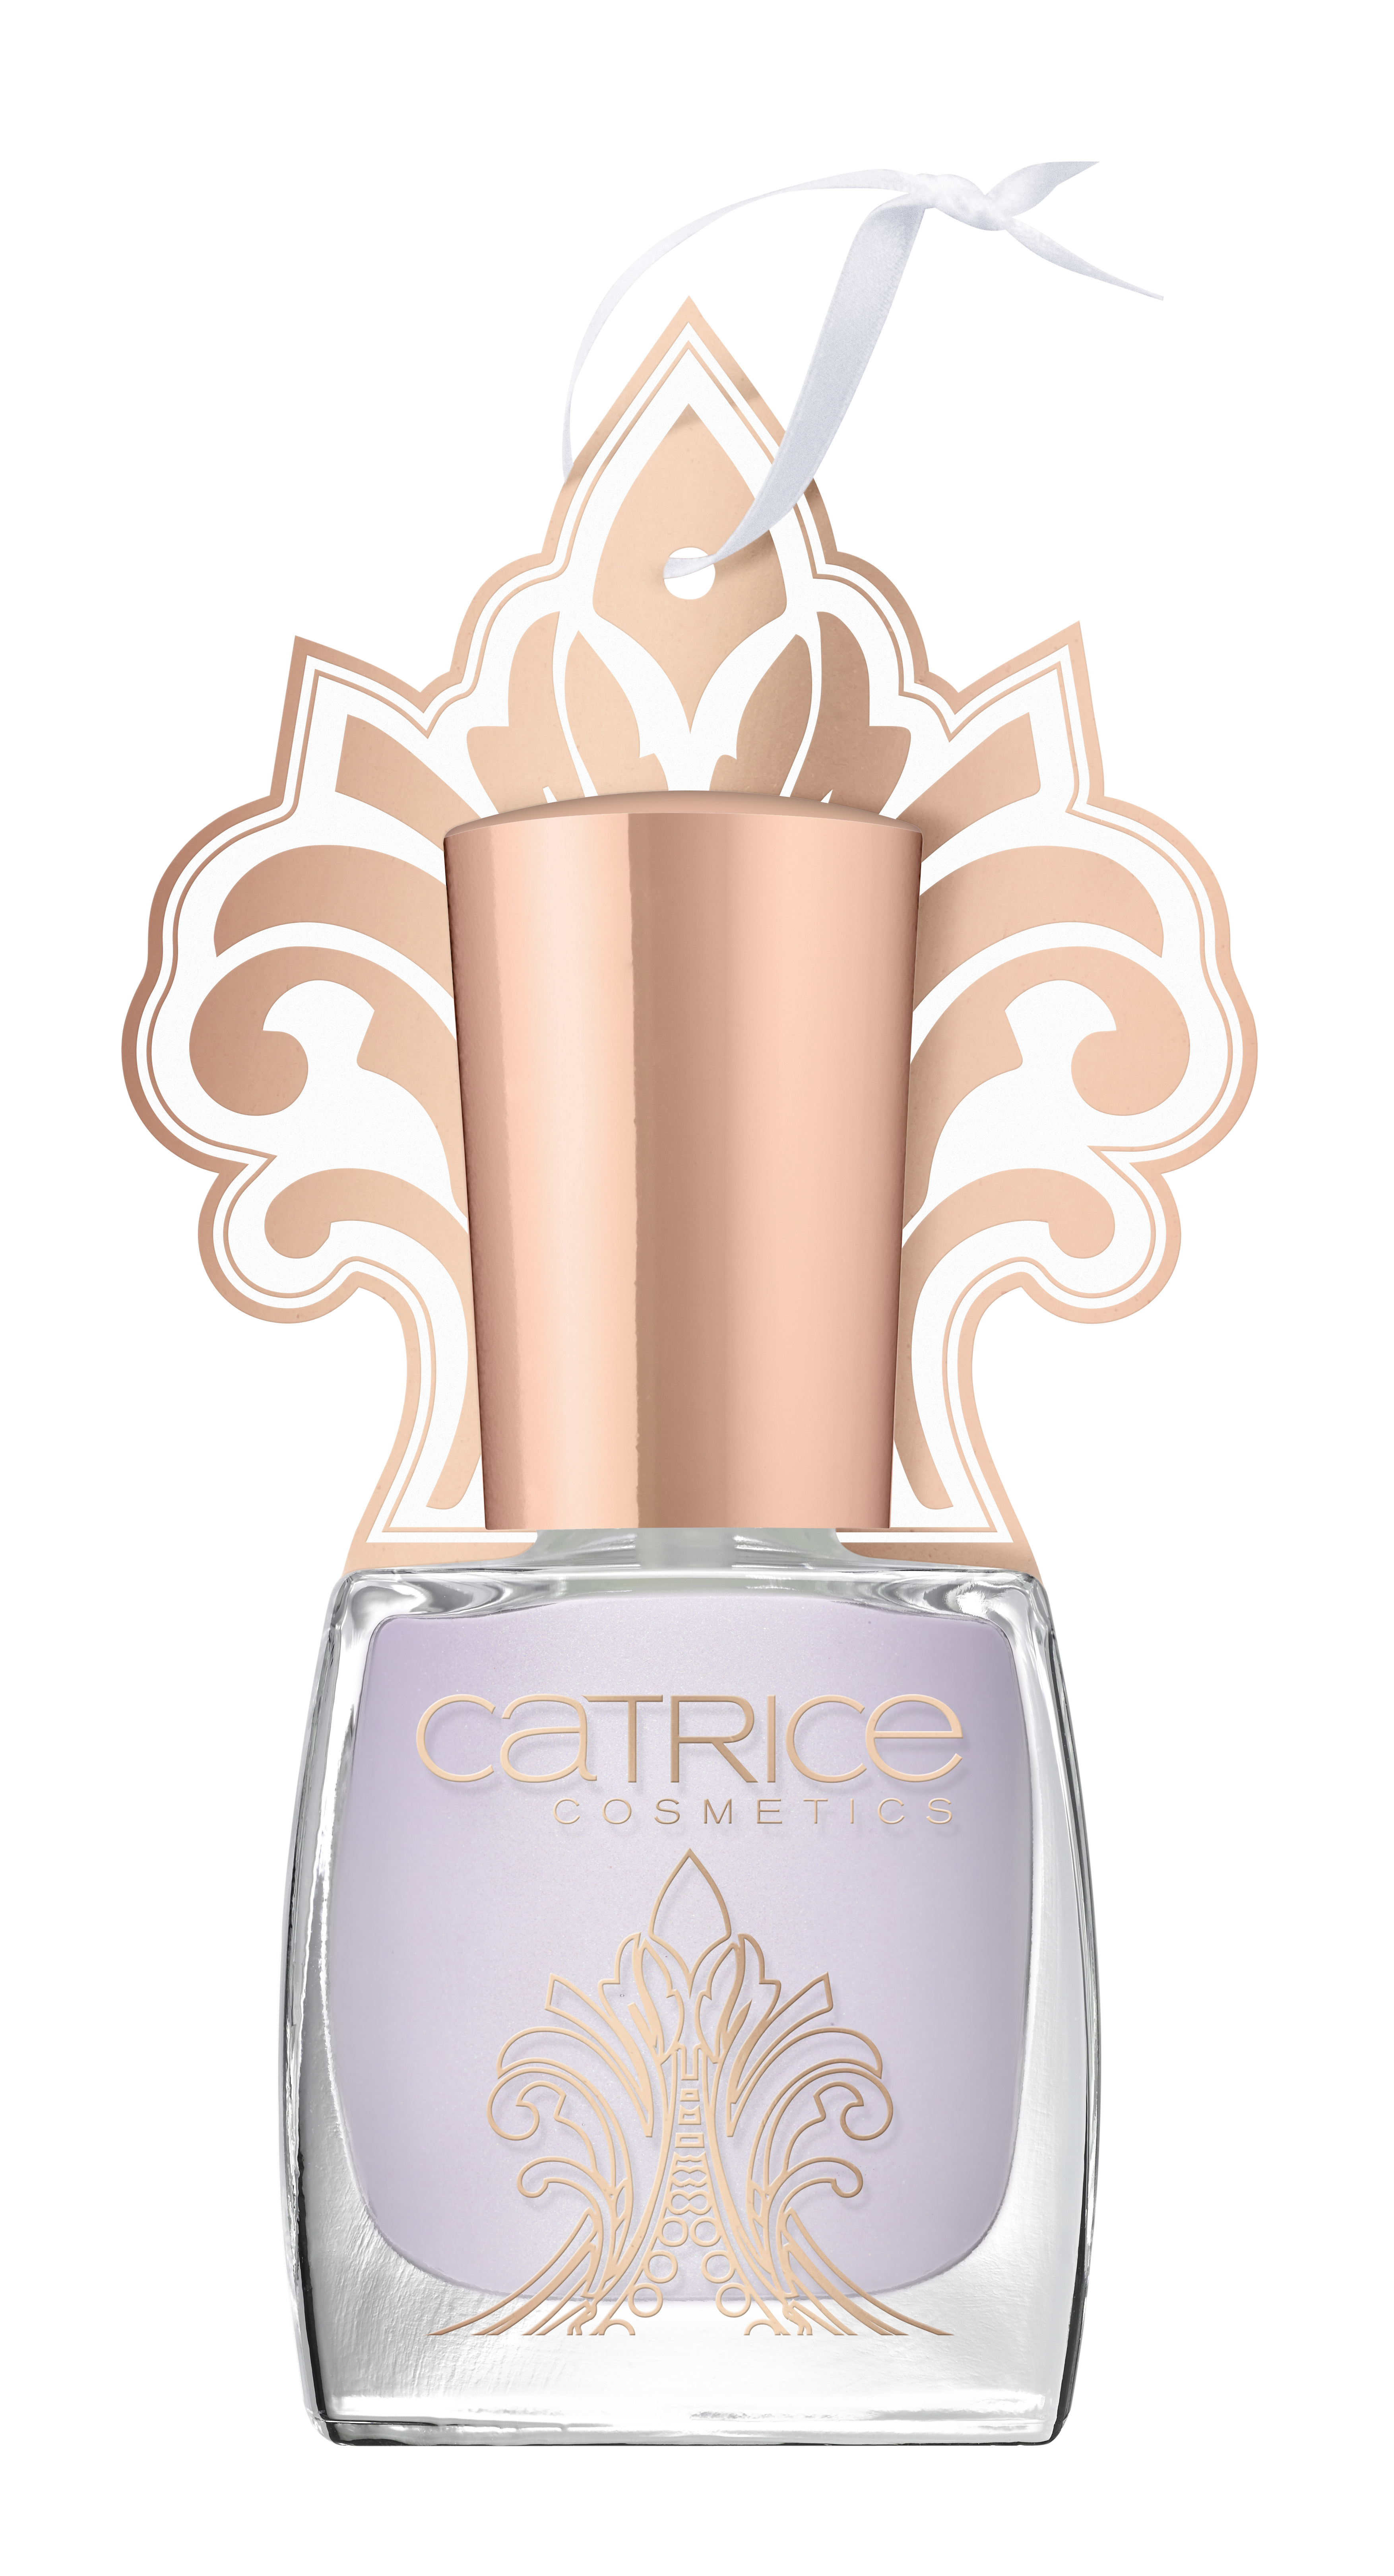 Catrice Victorian Poetry Satin Matt Nail Lacquer C05